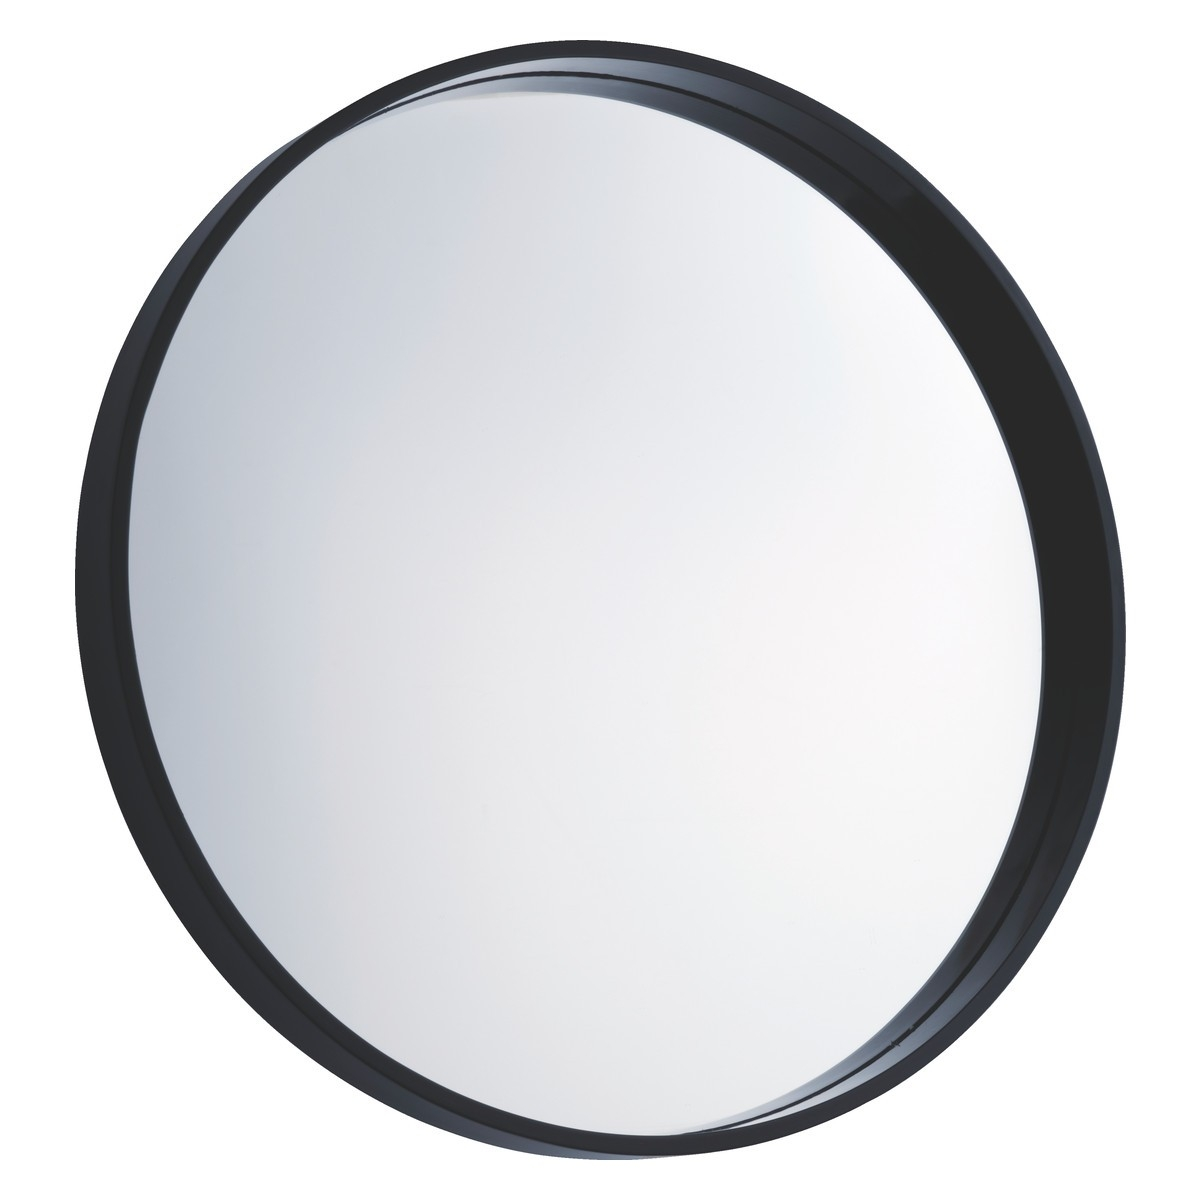 Aimee Black Round Wall Mirror D65cm Buy Now At Habitat Uk With Black Round Mirror (Image 3 of 15)